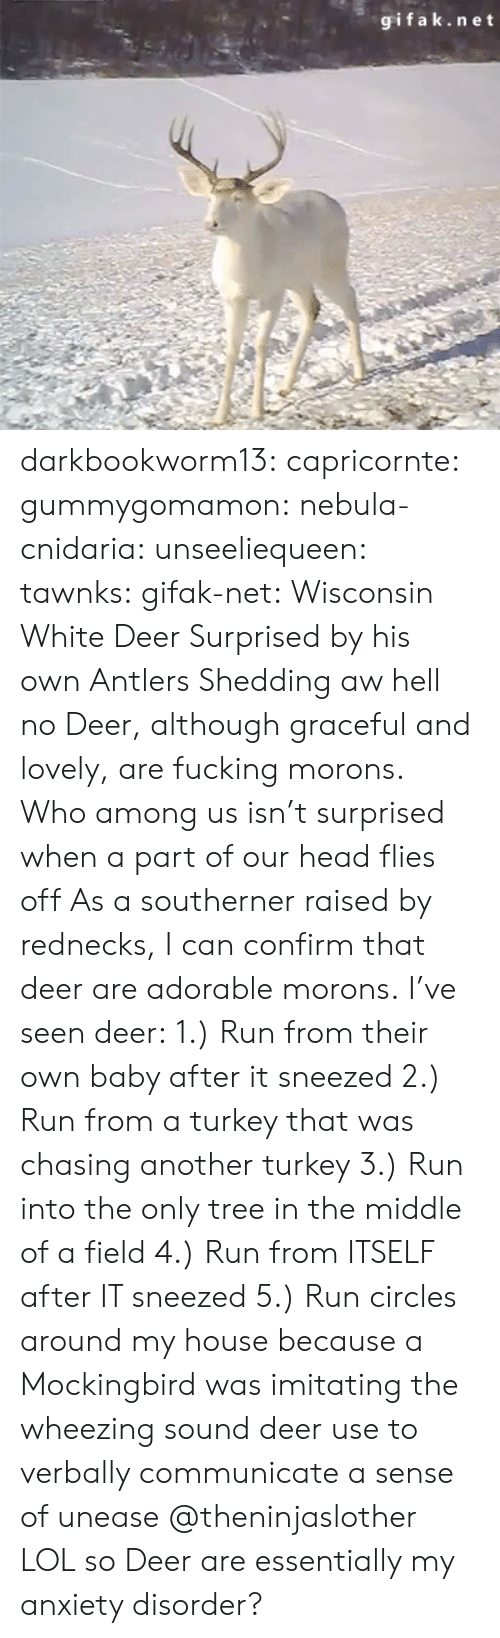 antlers: gifak.net darkbookworm13:  capricornte:  gummygomamon:  nebula-cnidaria:  unseeliequeen:  tawnks:  gifak-net:  Wisconsin White Deer Surprised by his own Antlers Shedding   aw hell no  Deer, although graceful and lovely, are fucking morons.   Who among us isn't surprised when a part of our head flies off   As a southerner raised by rednecks, I can confirm that deer are adorable morons. I've seen deer: 1.) Run from their own baby after it sneezed 2.) Run from a turkey that was chasing another turkey 3.) Run into the only tree in the middle of a field 4.) Run from ITSELF after IT sneezed 5.) Run circles around my house because a Mockingbird was imitating the  wheezing sound deer use to verbally communicate a sense of unease   @theninjaslother  LOL so Deer are essentially my anxiety disorder?